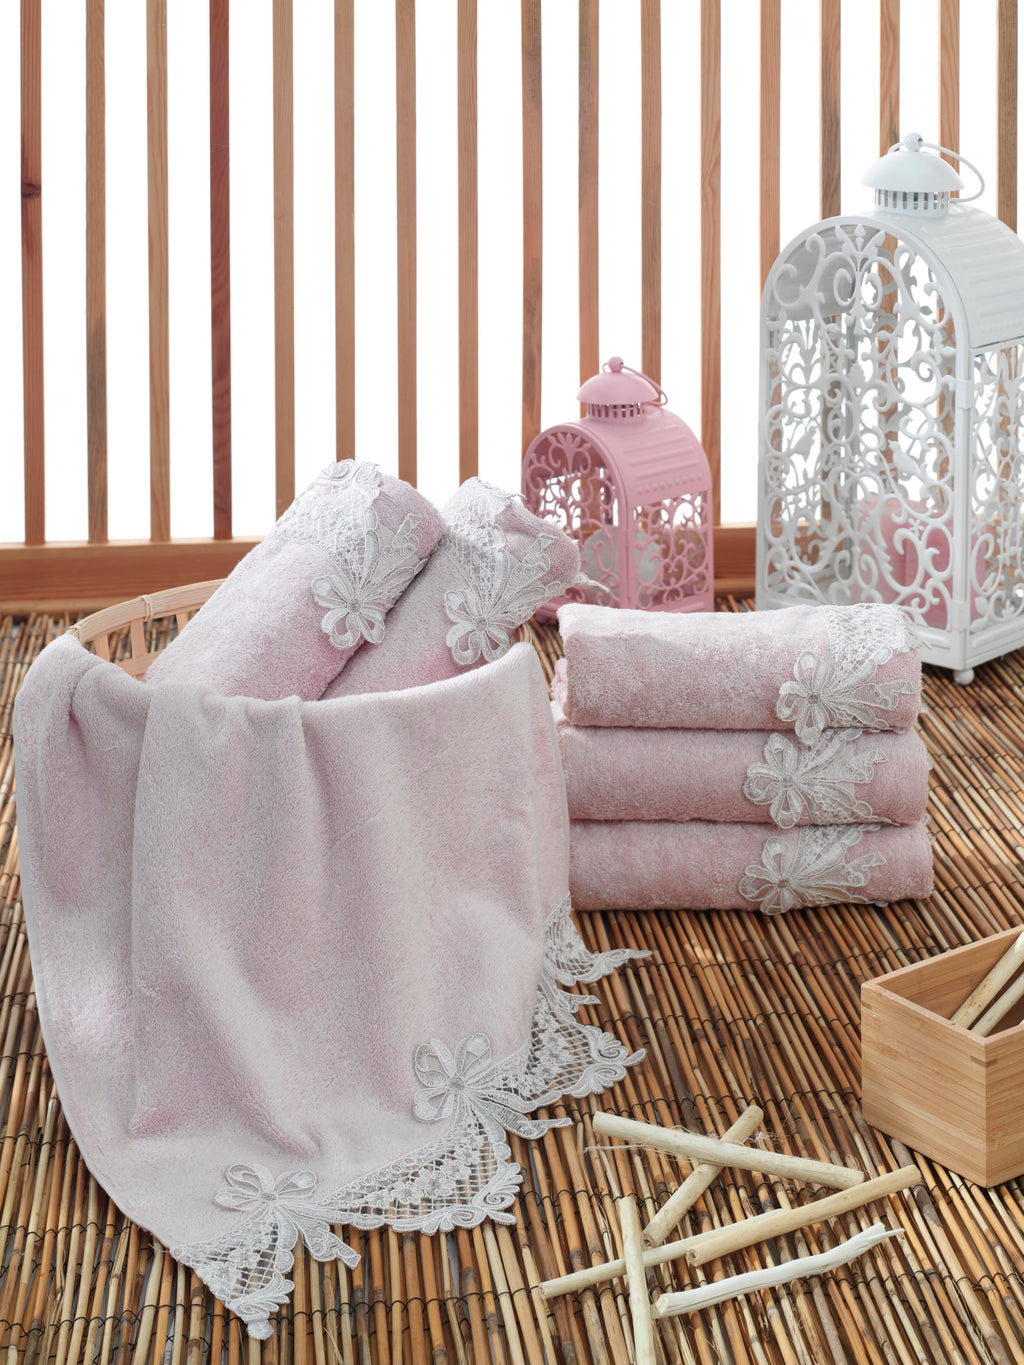 TURKISH BAMBOO ABSORBENT TOWEL WITH FRENCH GUIPURE - COTTONISH